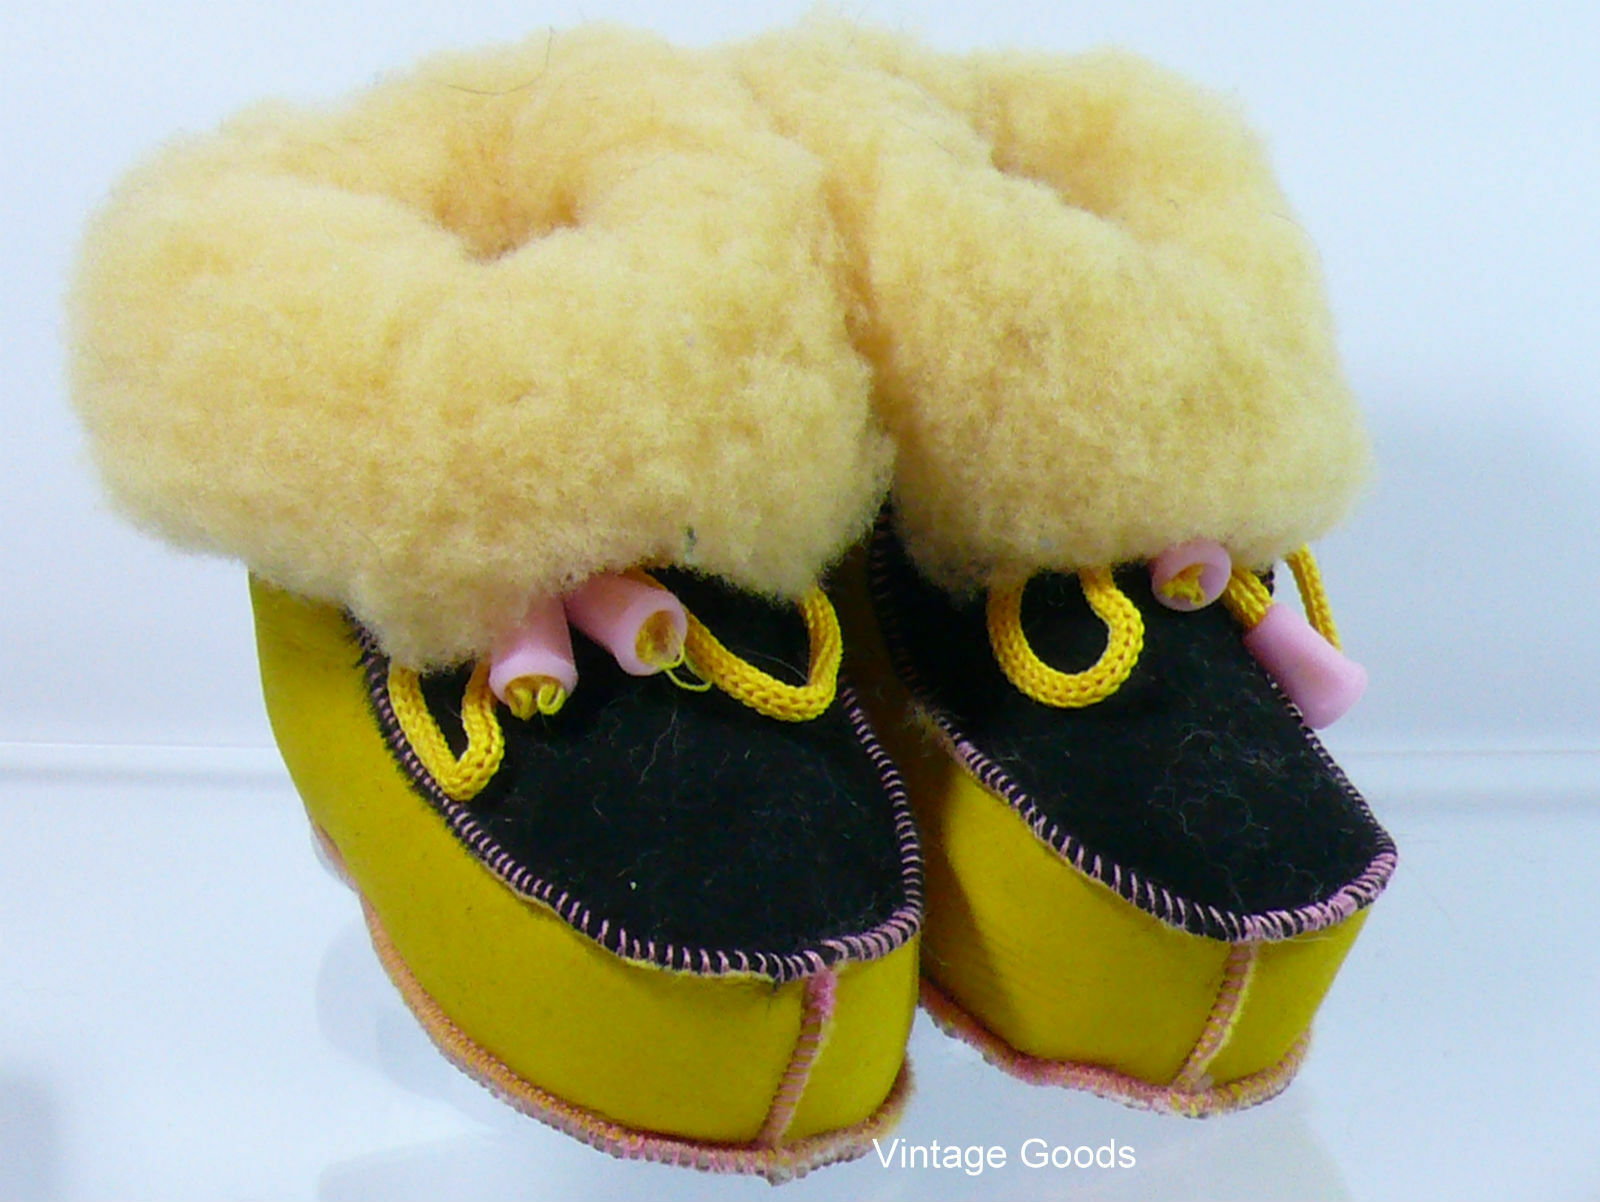 SHEEPSKIN  SLIPPERS/BOOTS FOR BABY 100% GENUINE  LEATHER UNISEX 1